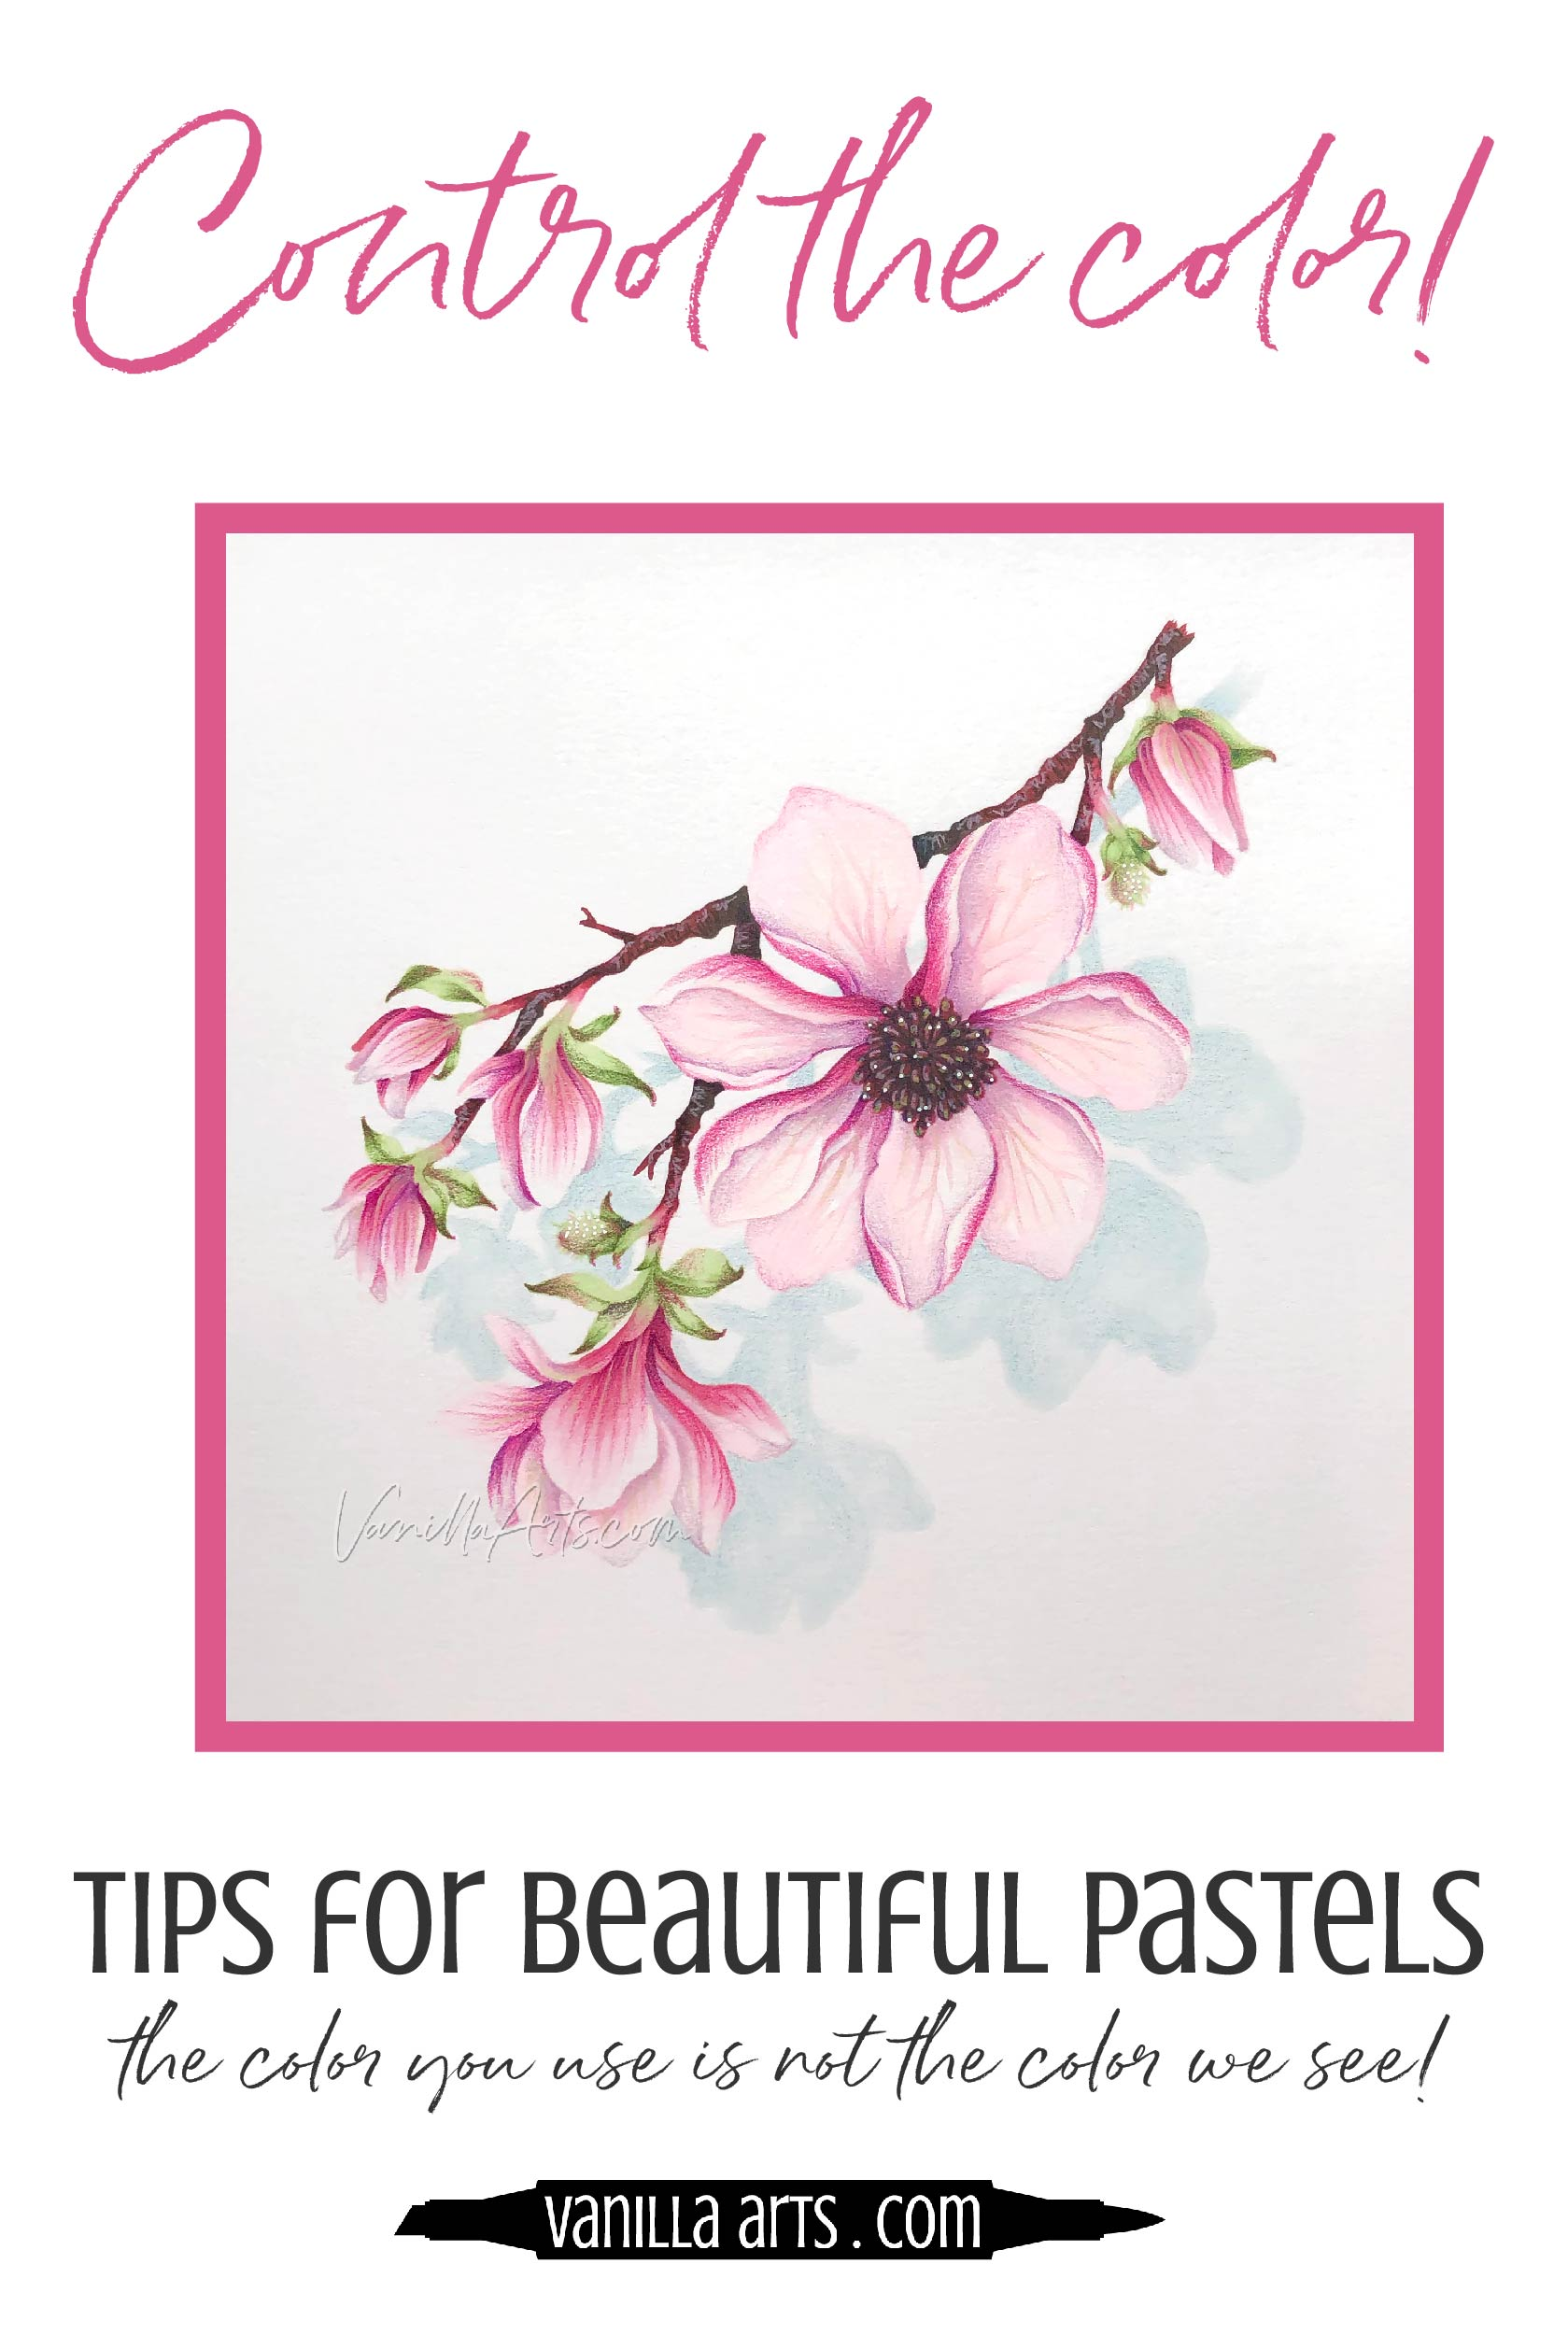 Do your soft and delicate colors get wilder and bolder as you color? 5 tips for controlling pale pastel colors with Copic Markers and colored pencils. Improve your adult coloring. | VanillaArts.com | #copic #adultcoloring #howtocolor